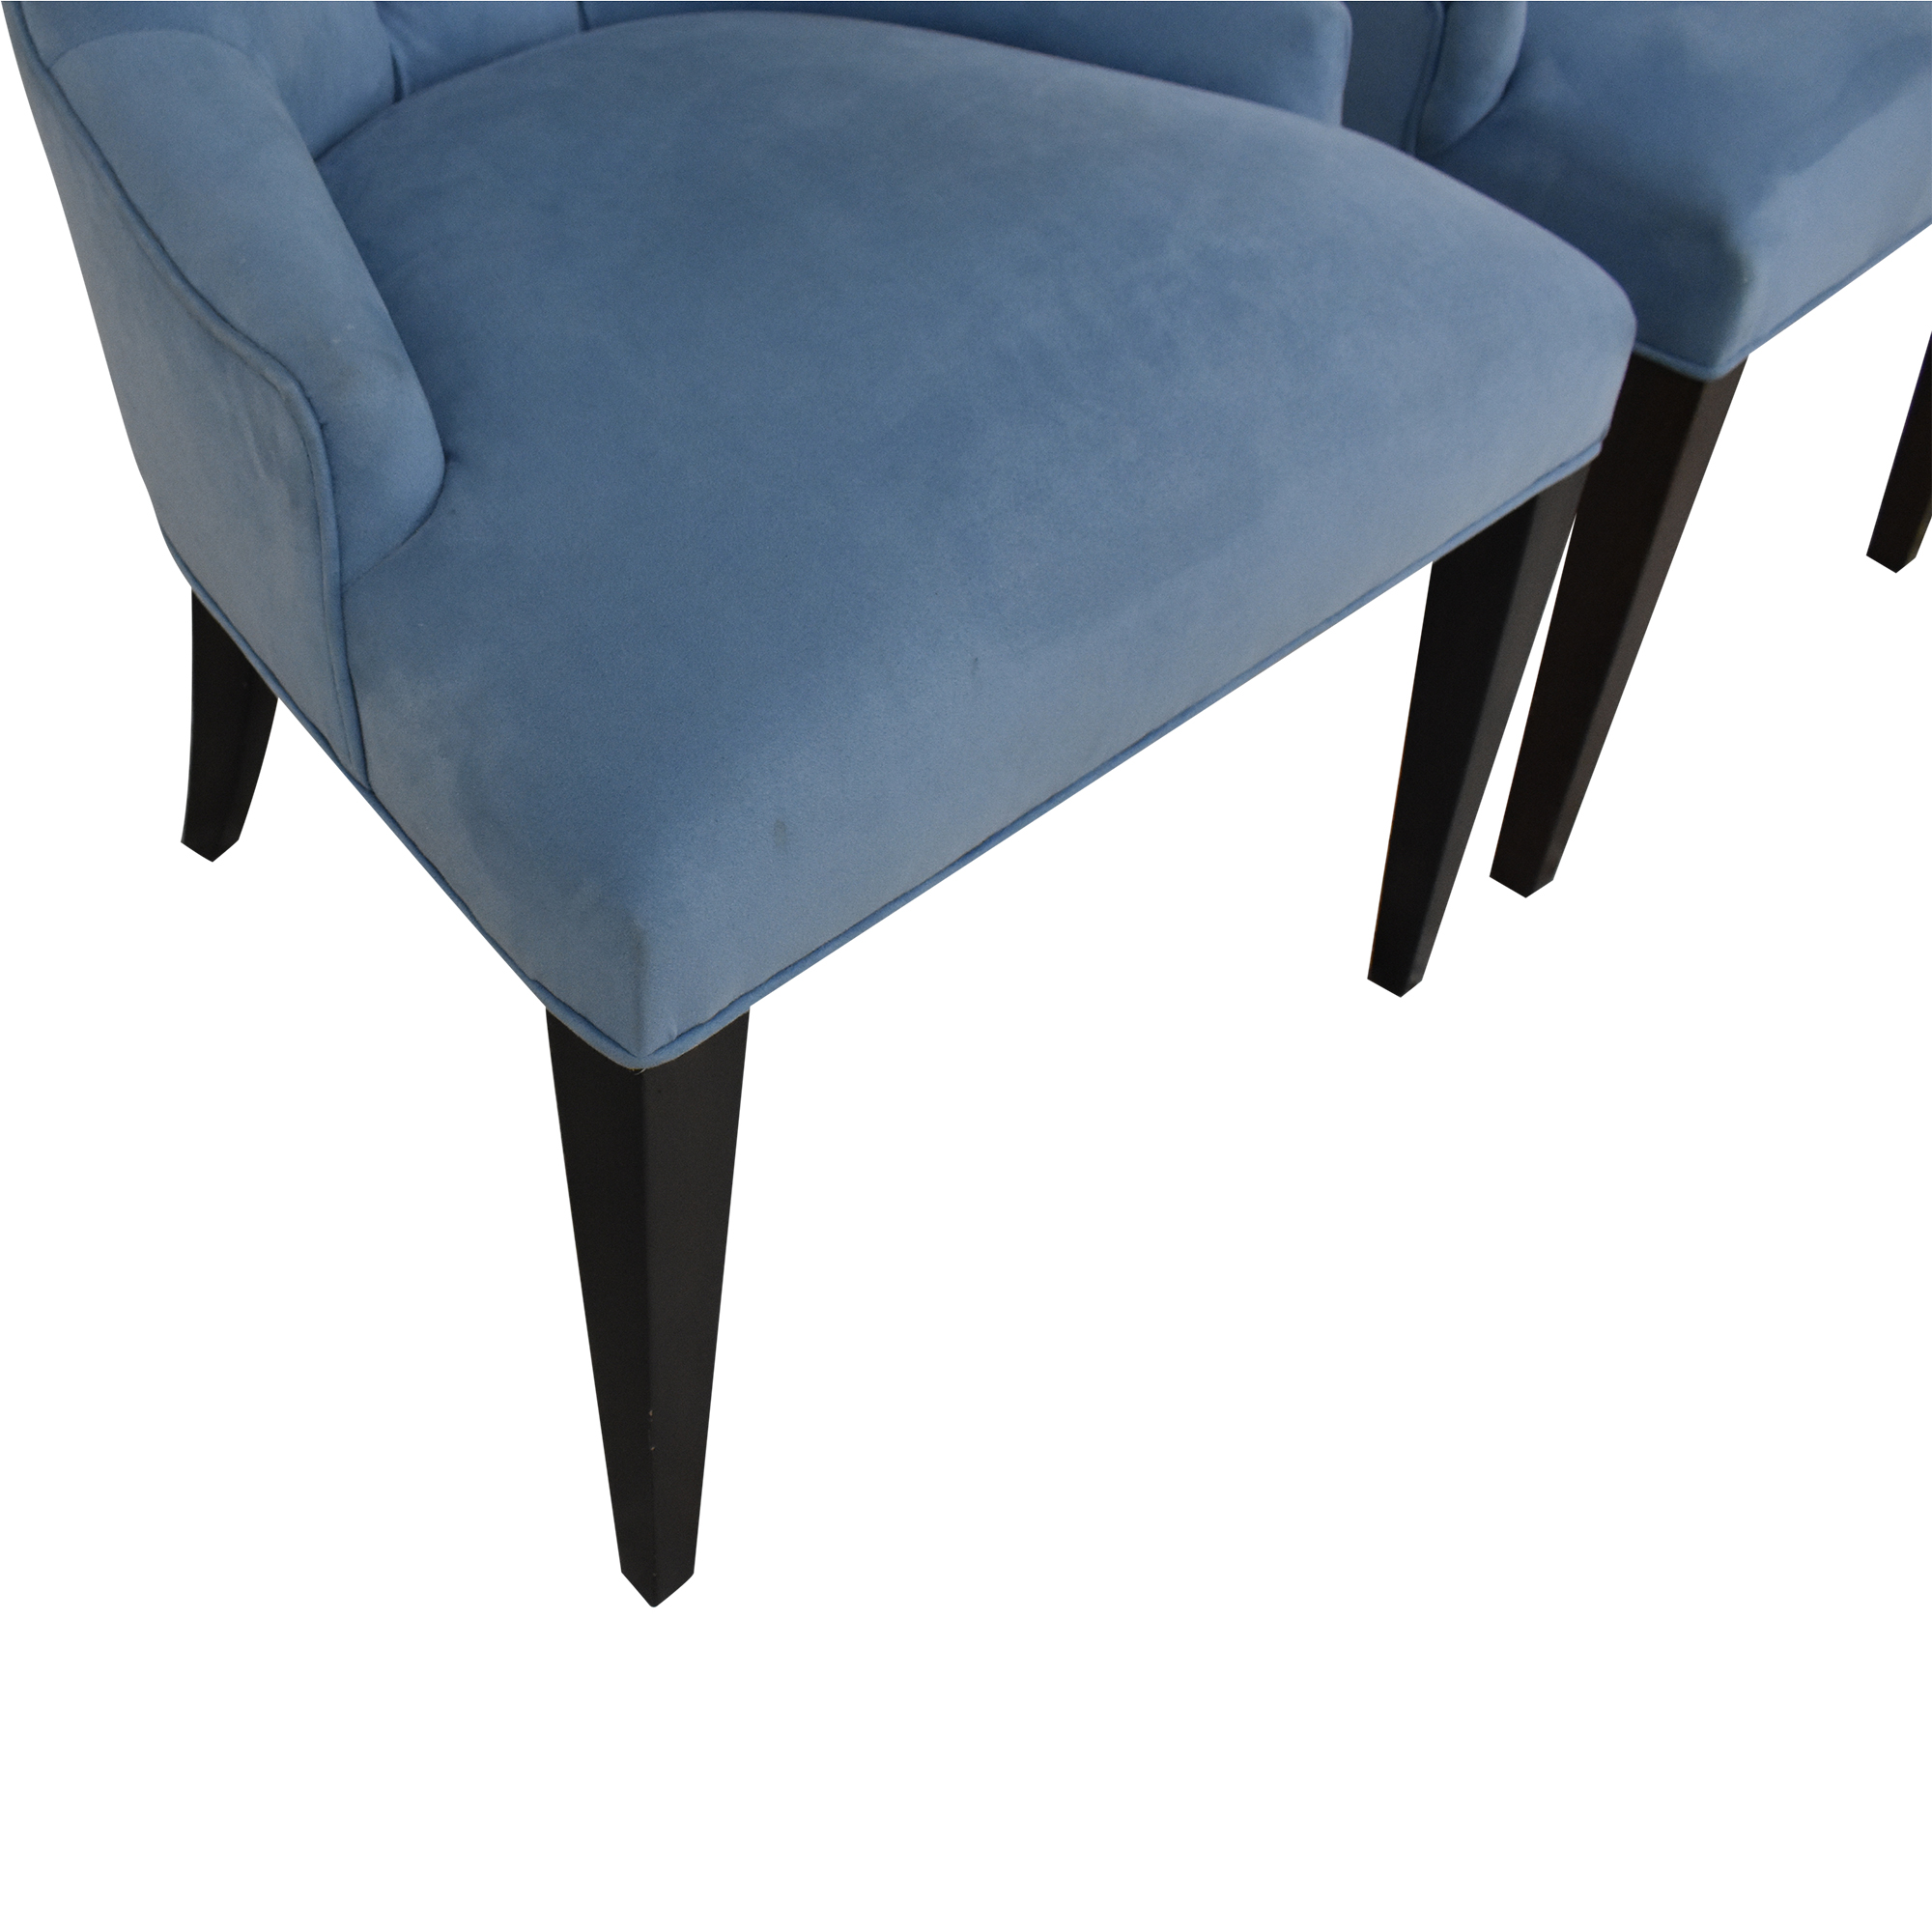 Tufted Back Dining Chairs / Dining Chairs